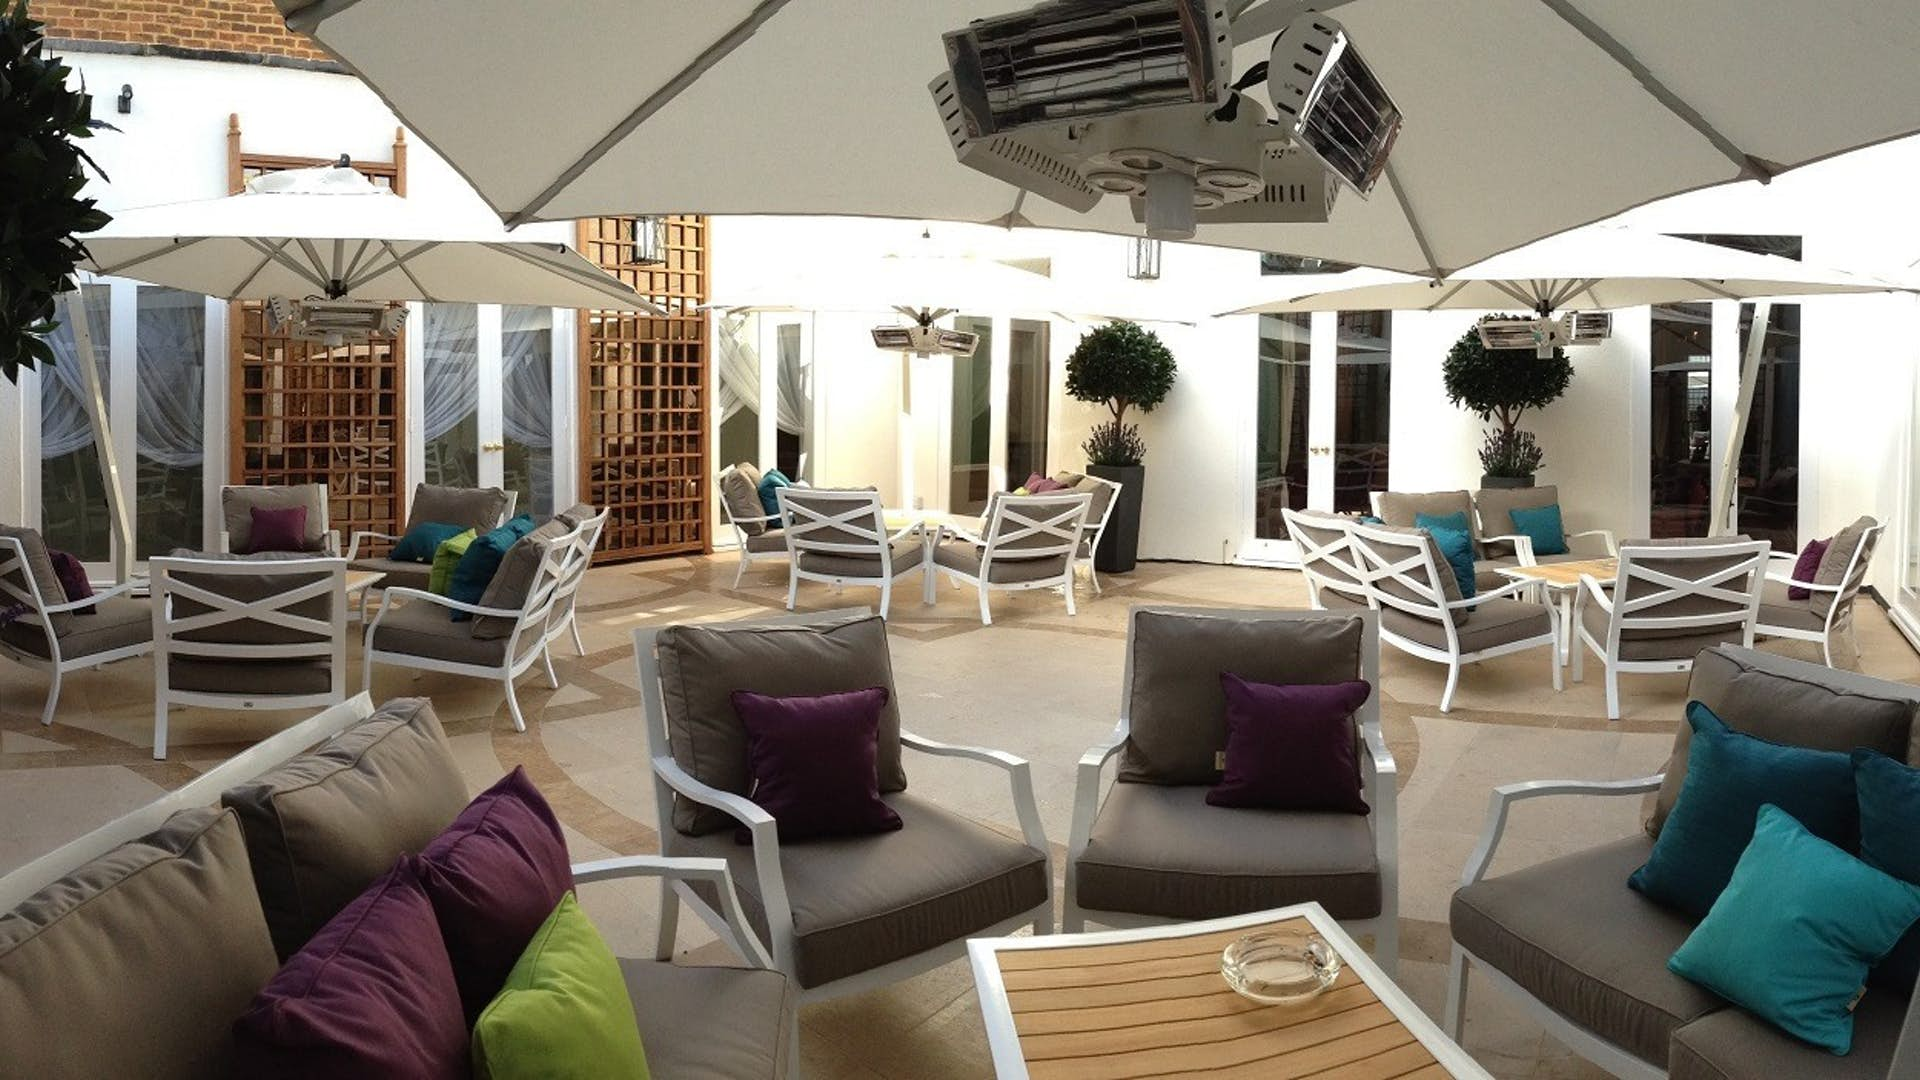 Garden room events hire city of london club for Modern garden rooms london